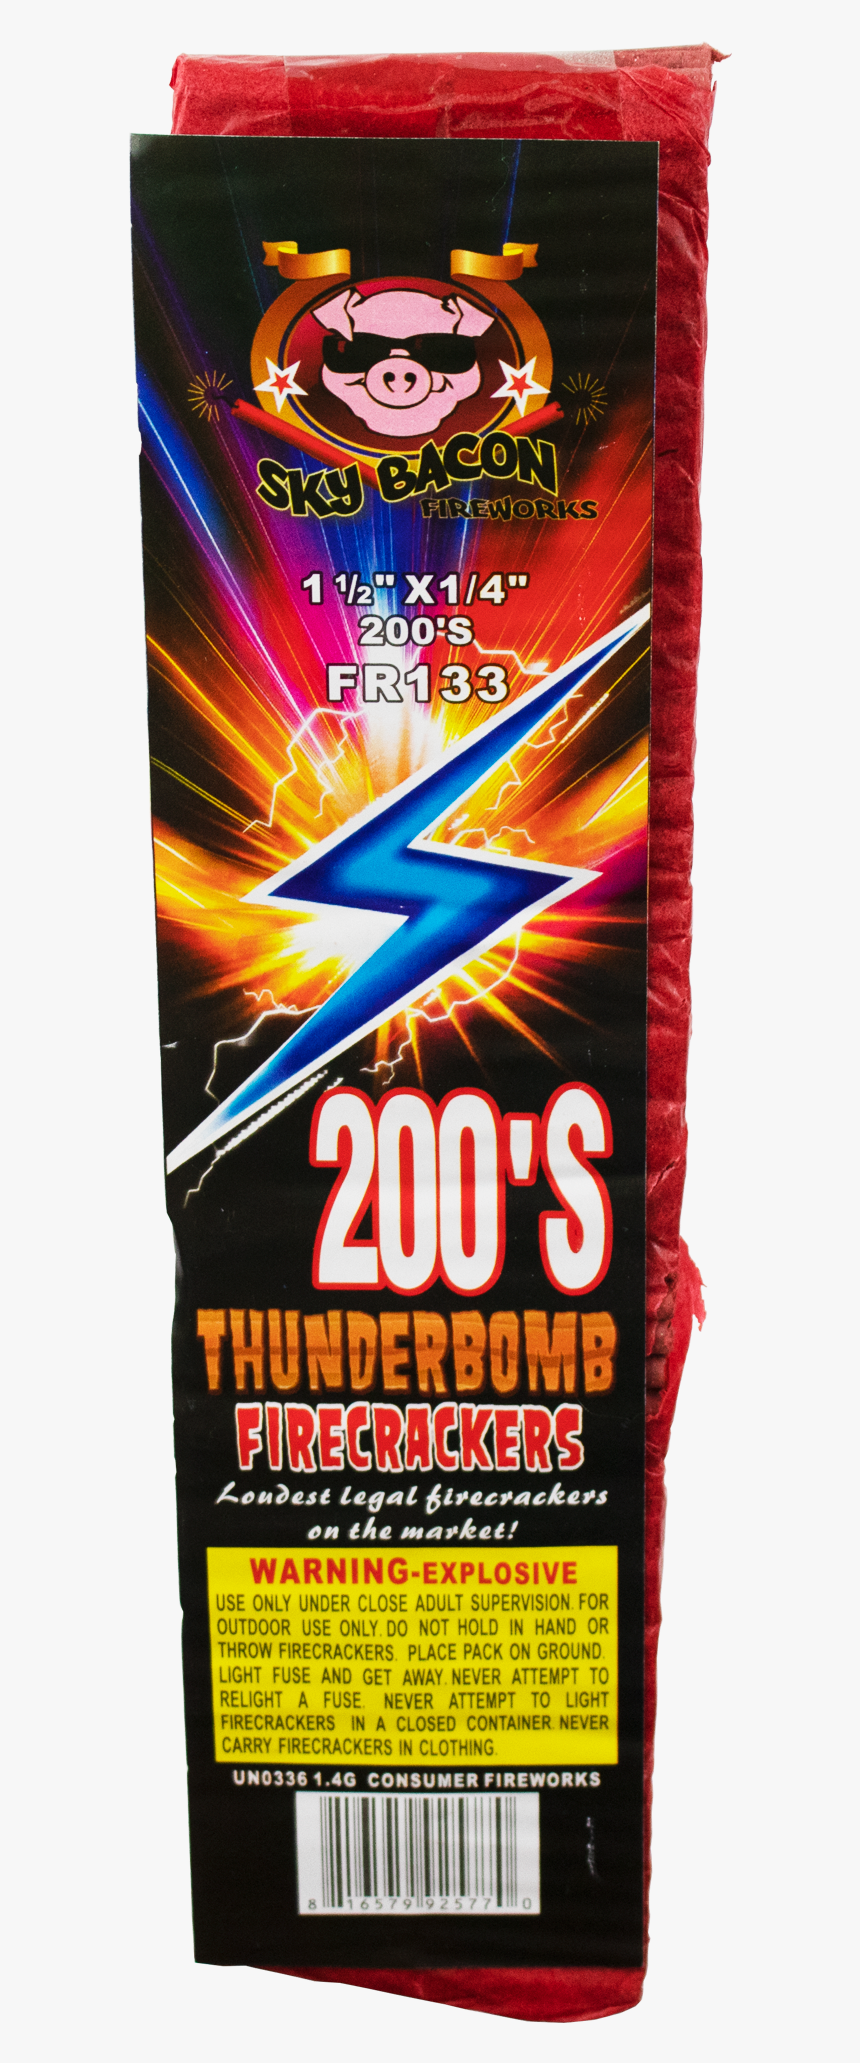 Thunderbomb Firecrackers 200s - Multimedia Software, HD Png Download, Free Download